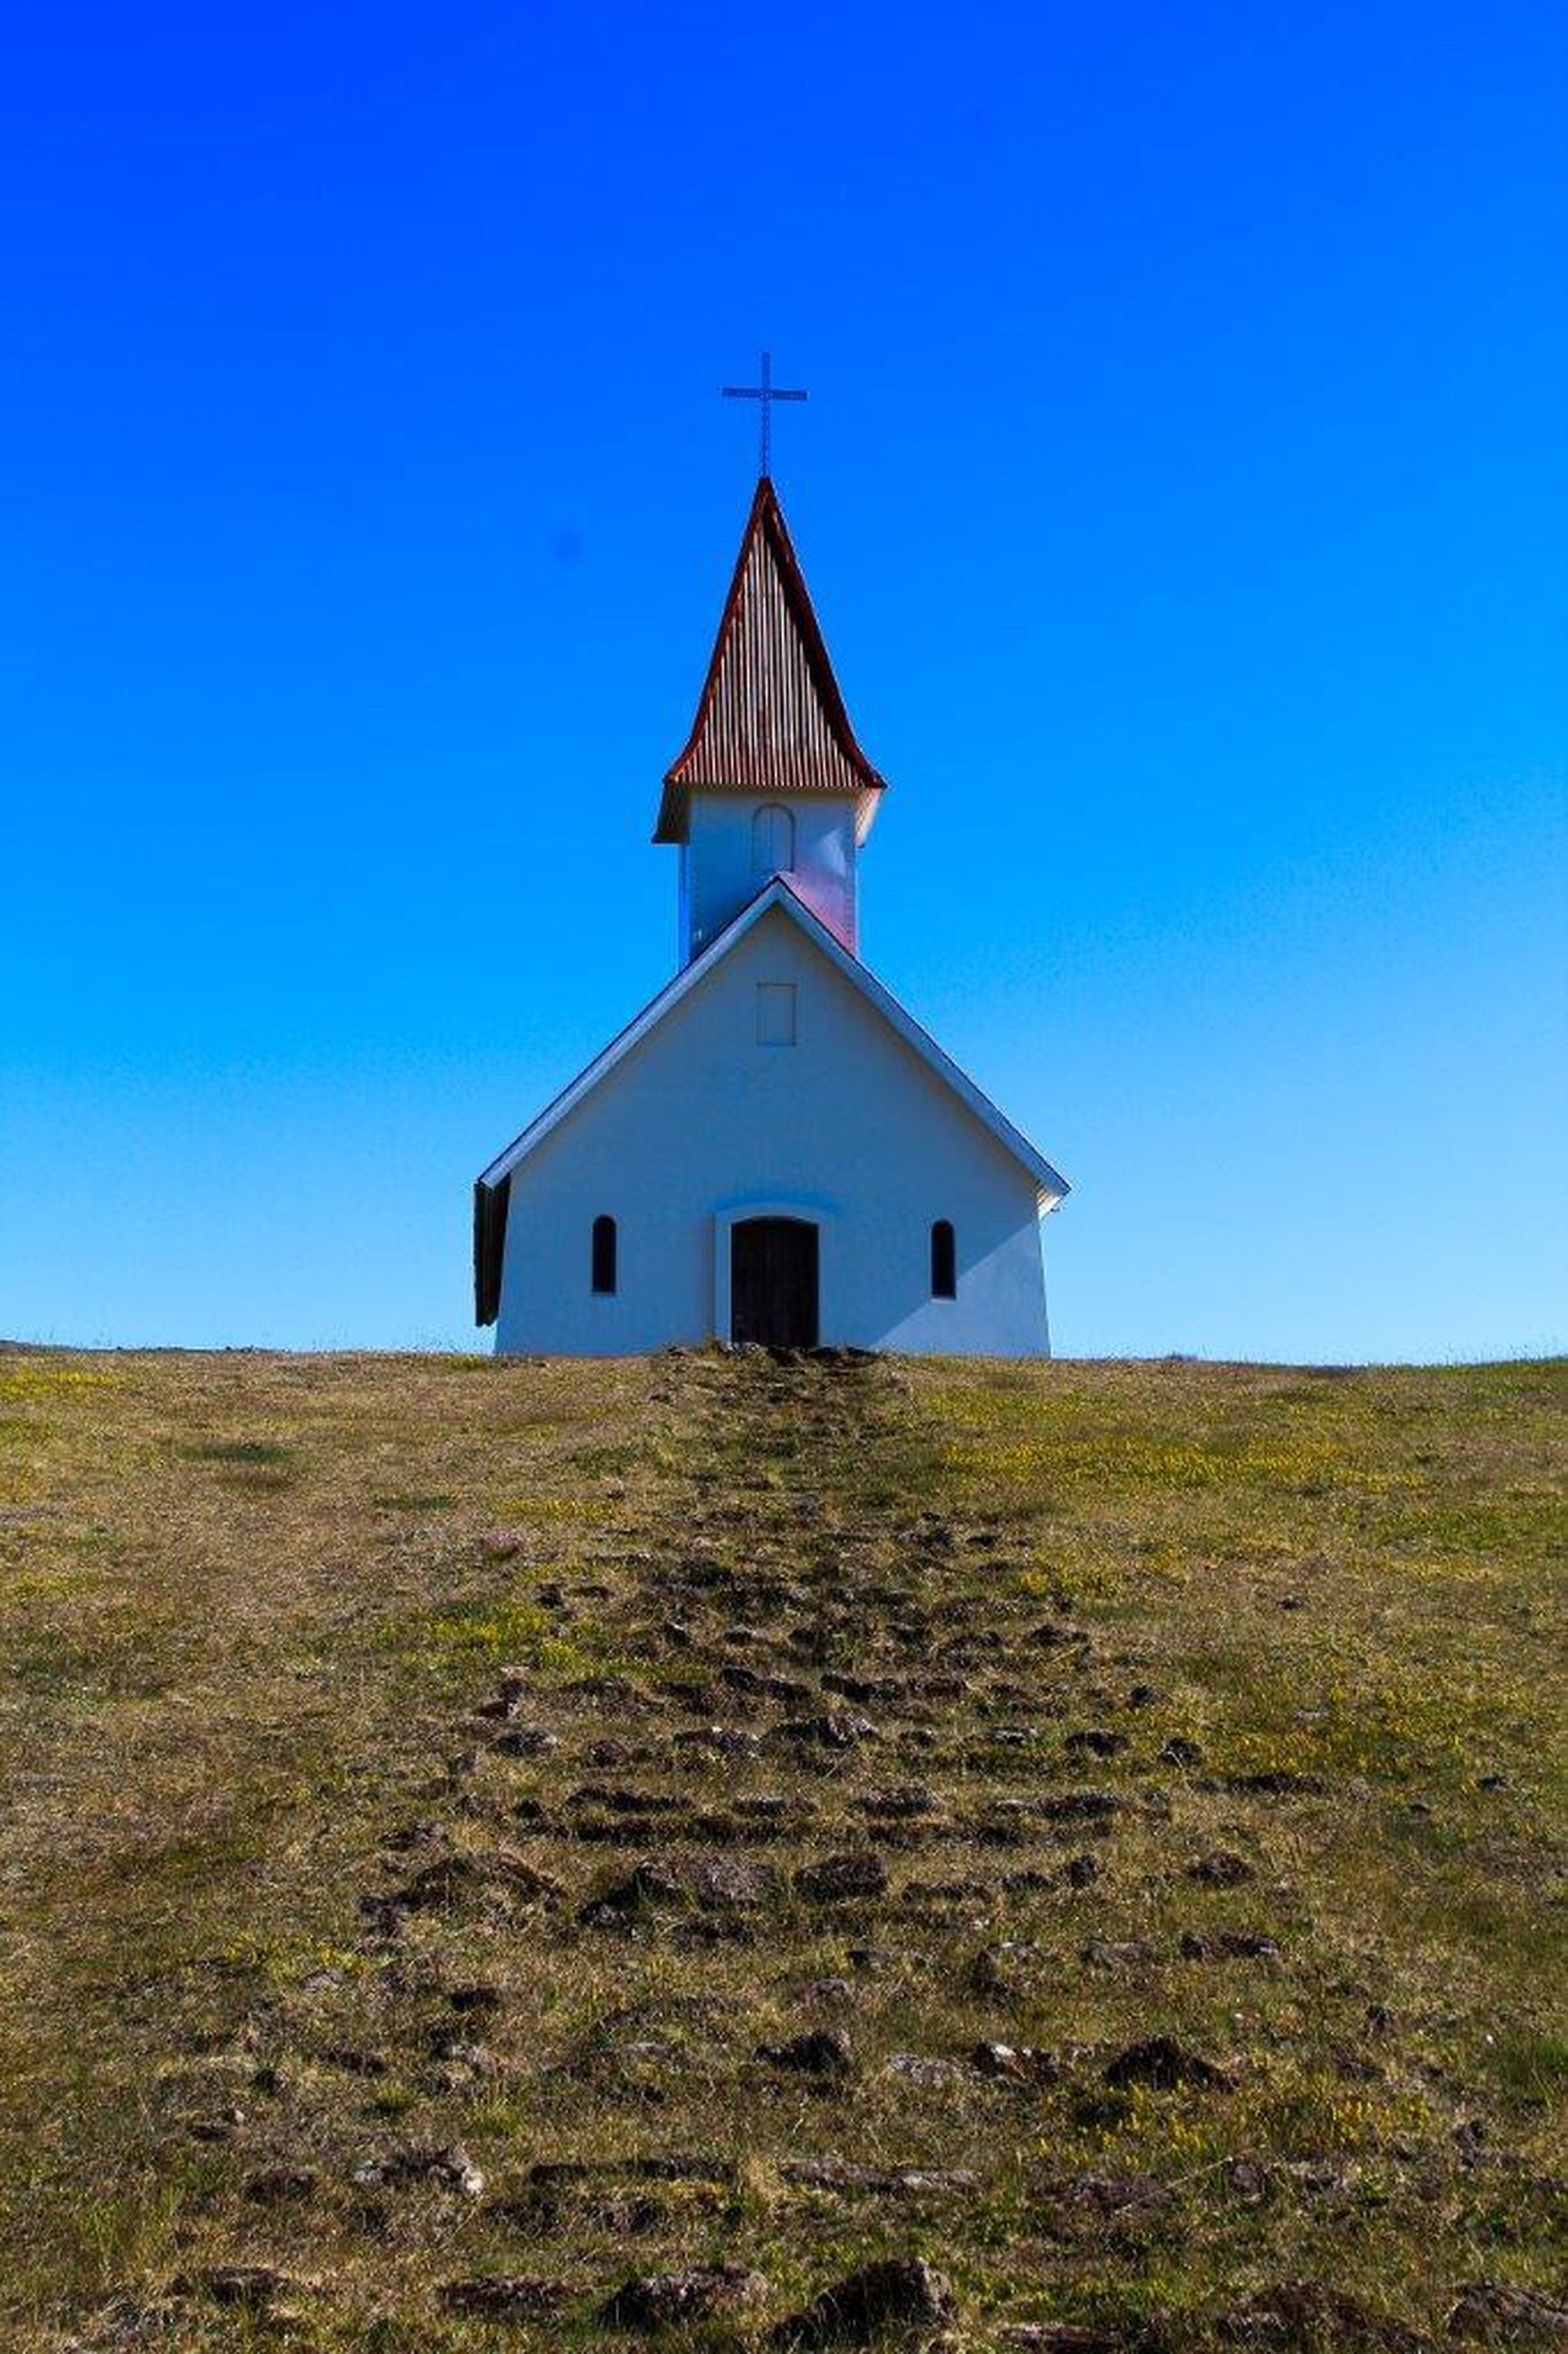 architecture, building exterior, built structure, religion, place of worship, church, spirituality, blue, clear sky, cross, copy space, house, low angle view, sky, sunlight, day, outdoors, tower